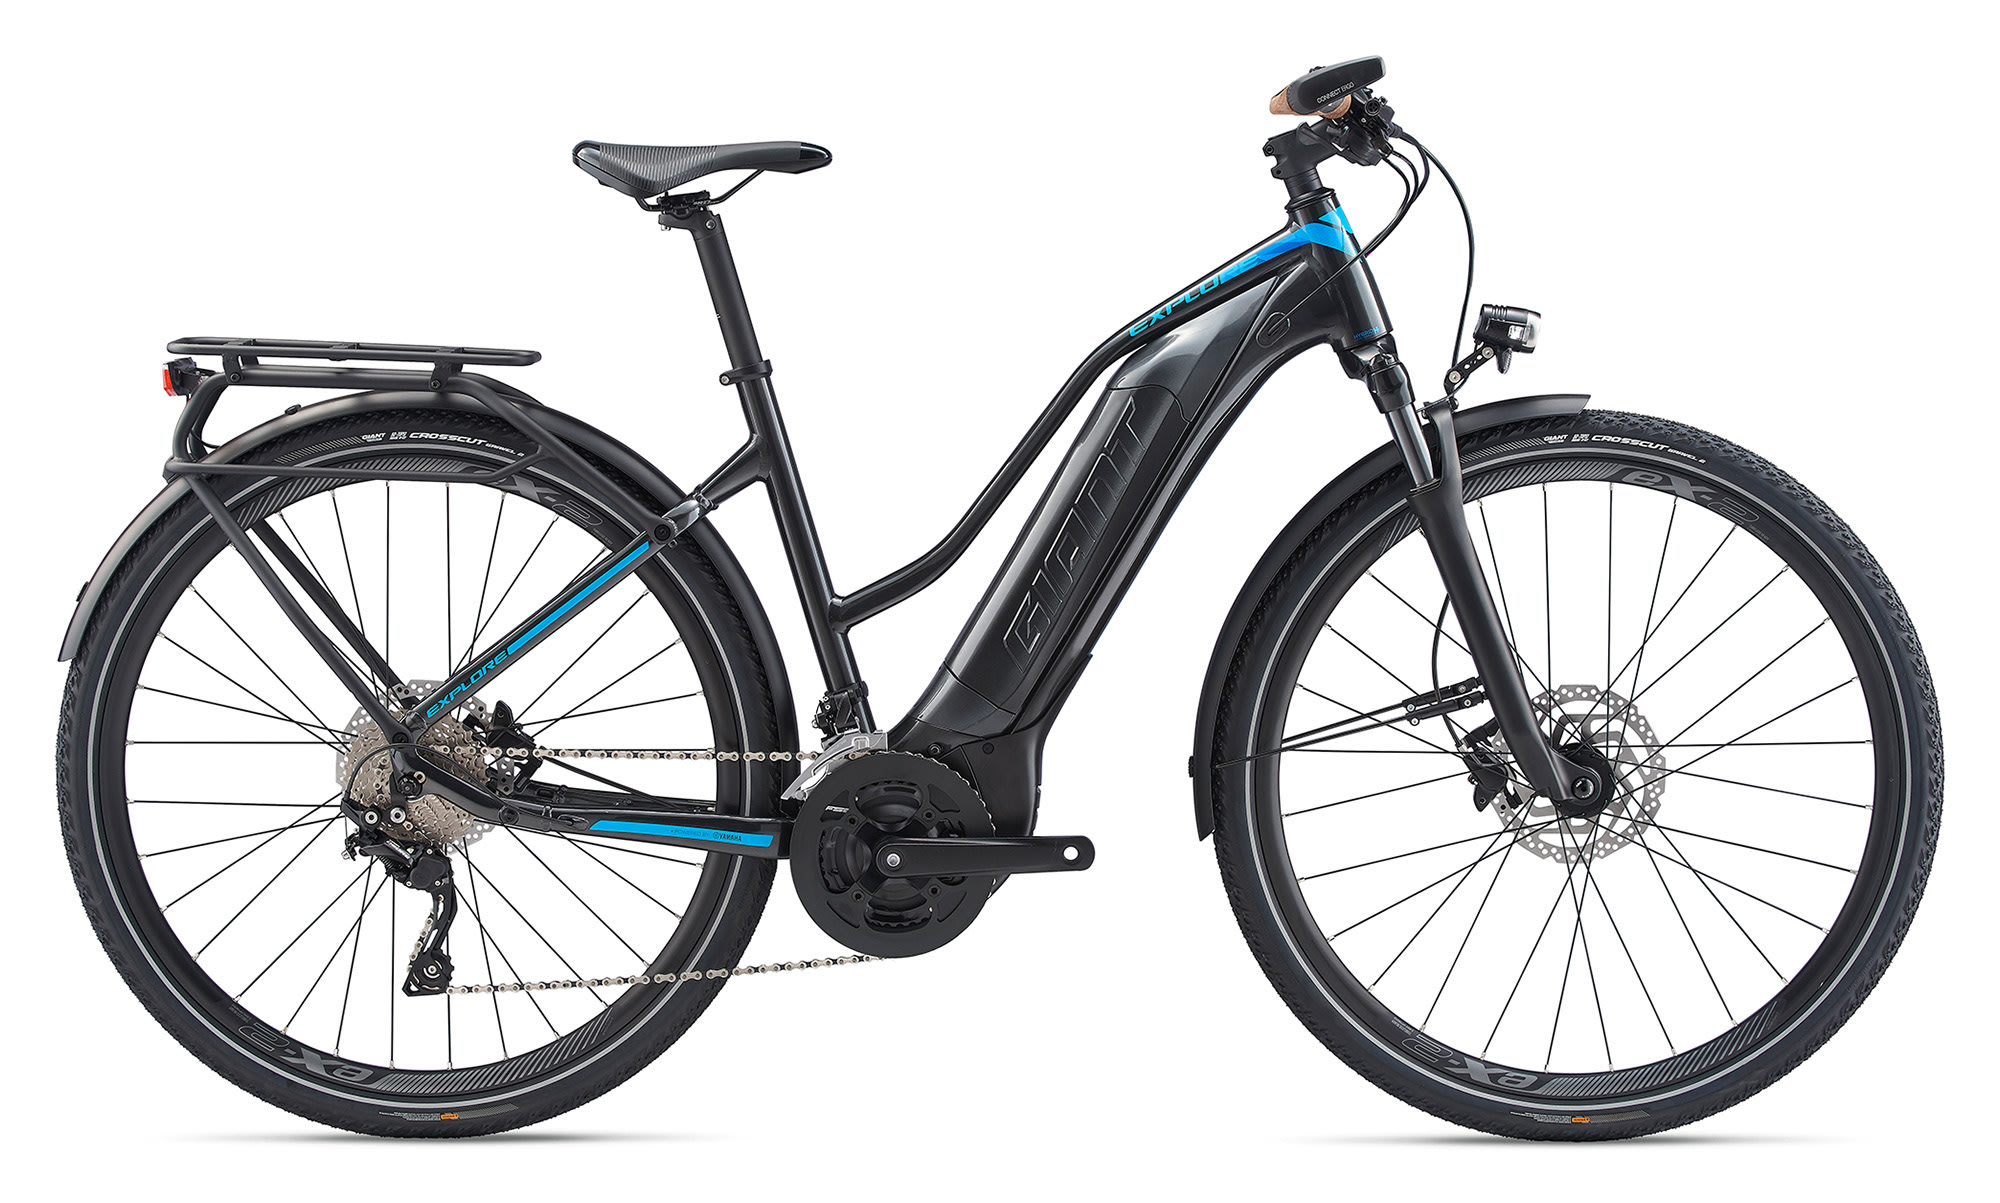 BikeBase Giant Explore E+ 1 Electric Stagger Frame Giant 2020 ***